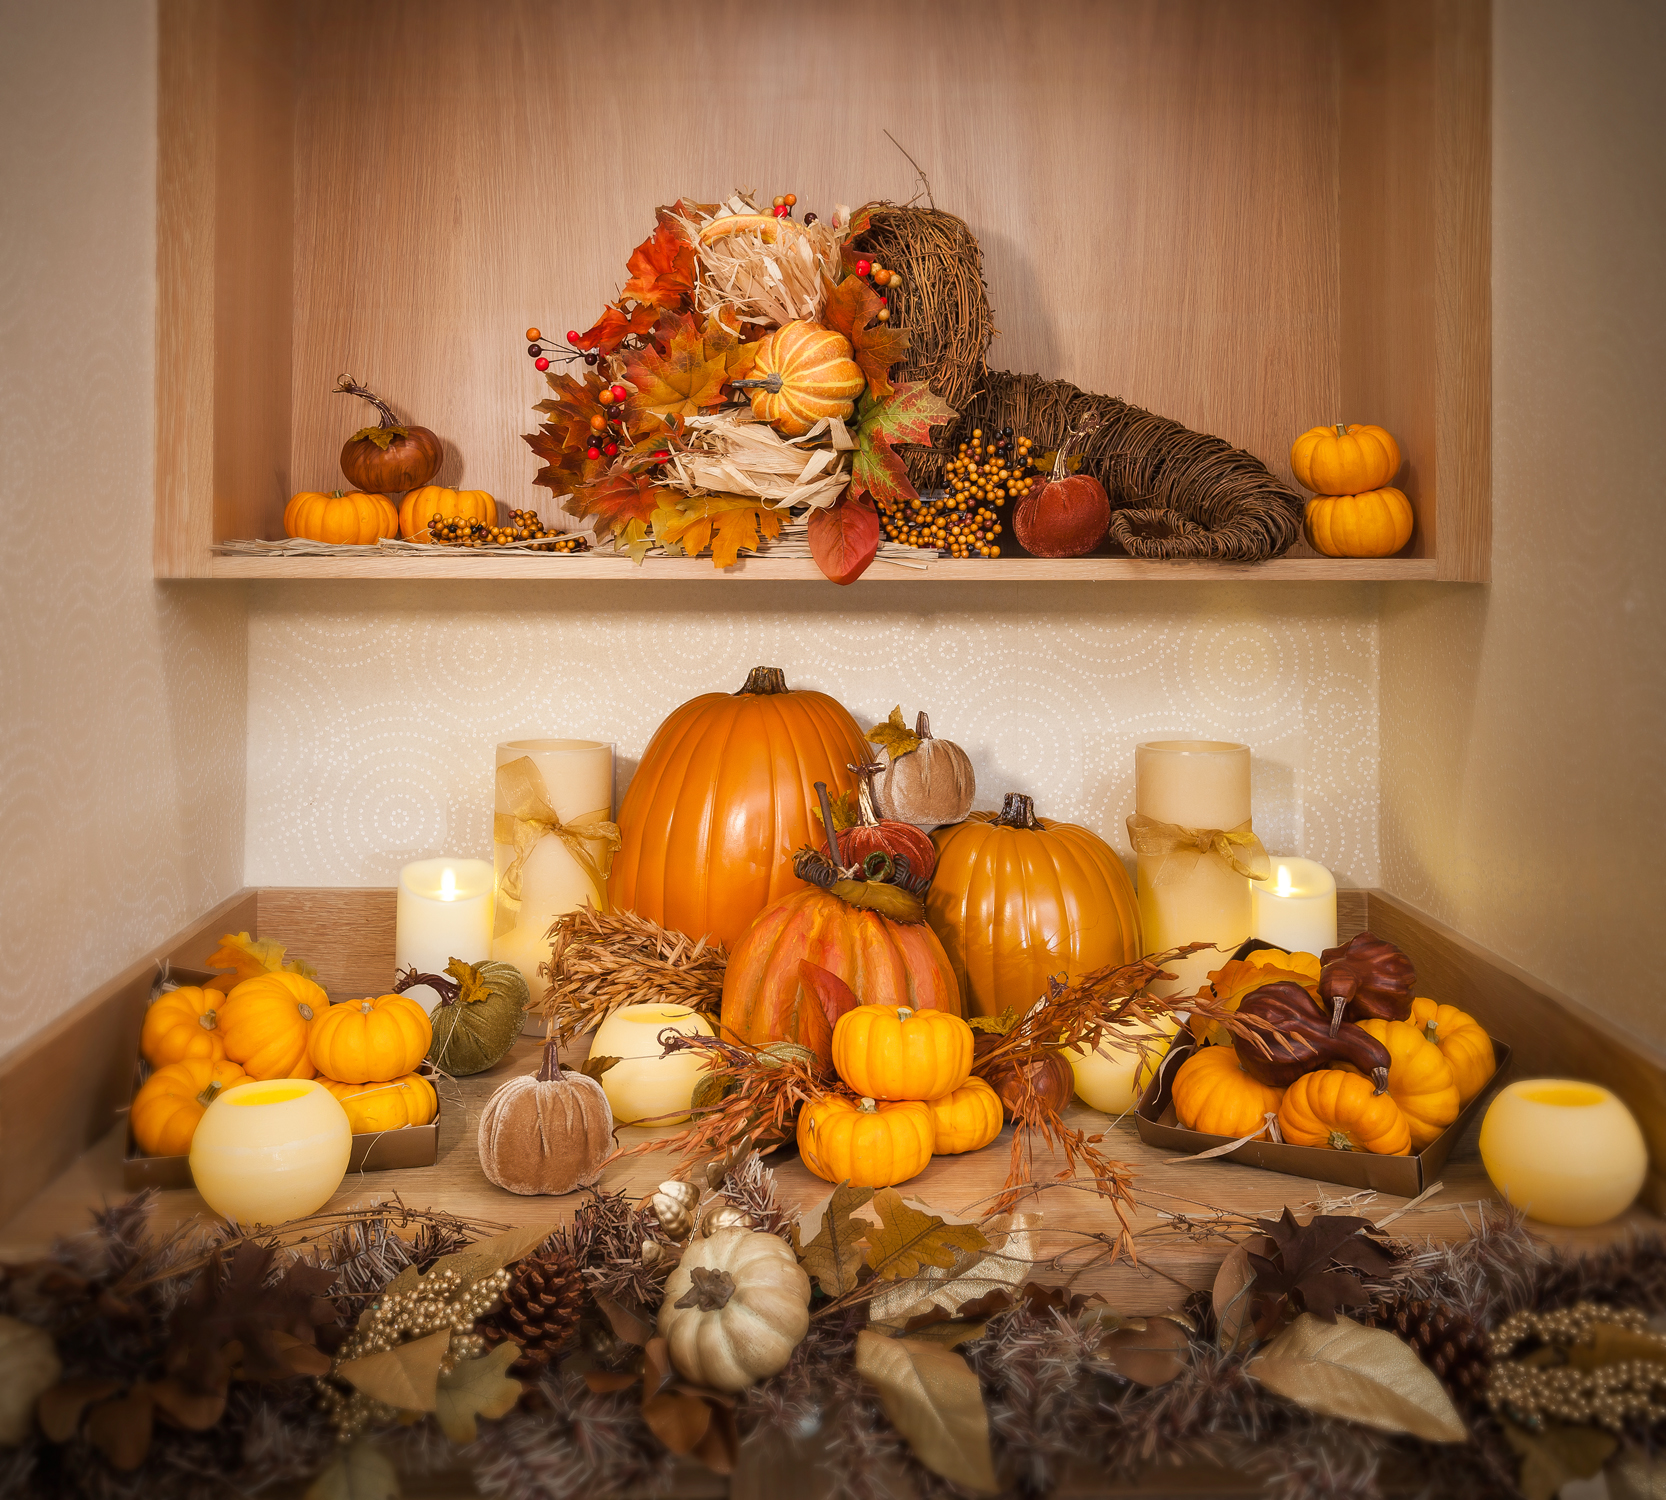 Celebrate Fall With Pumpkin-Based Spa Treatments Throughout South Florida